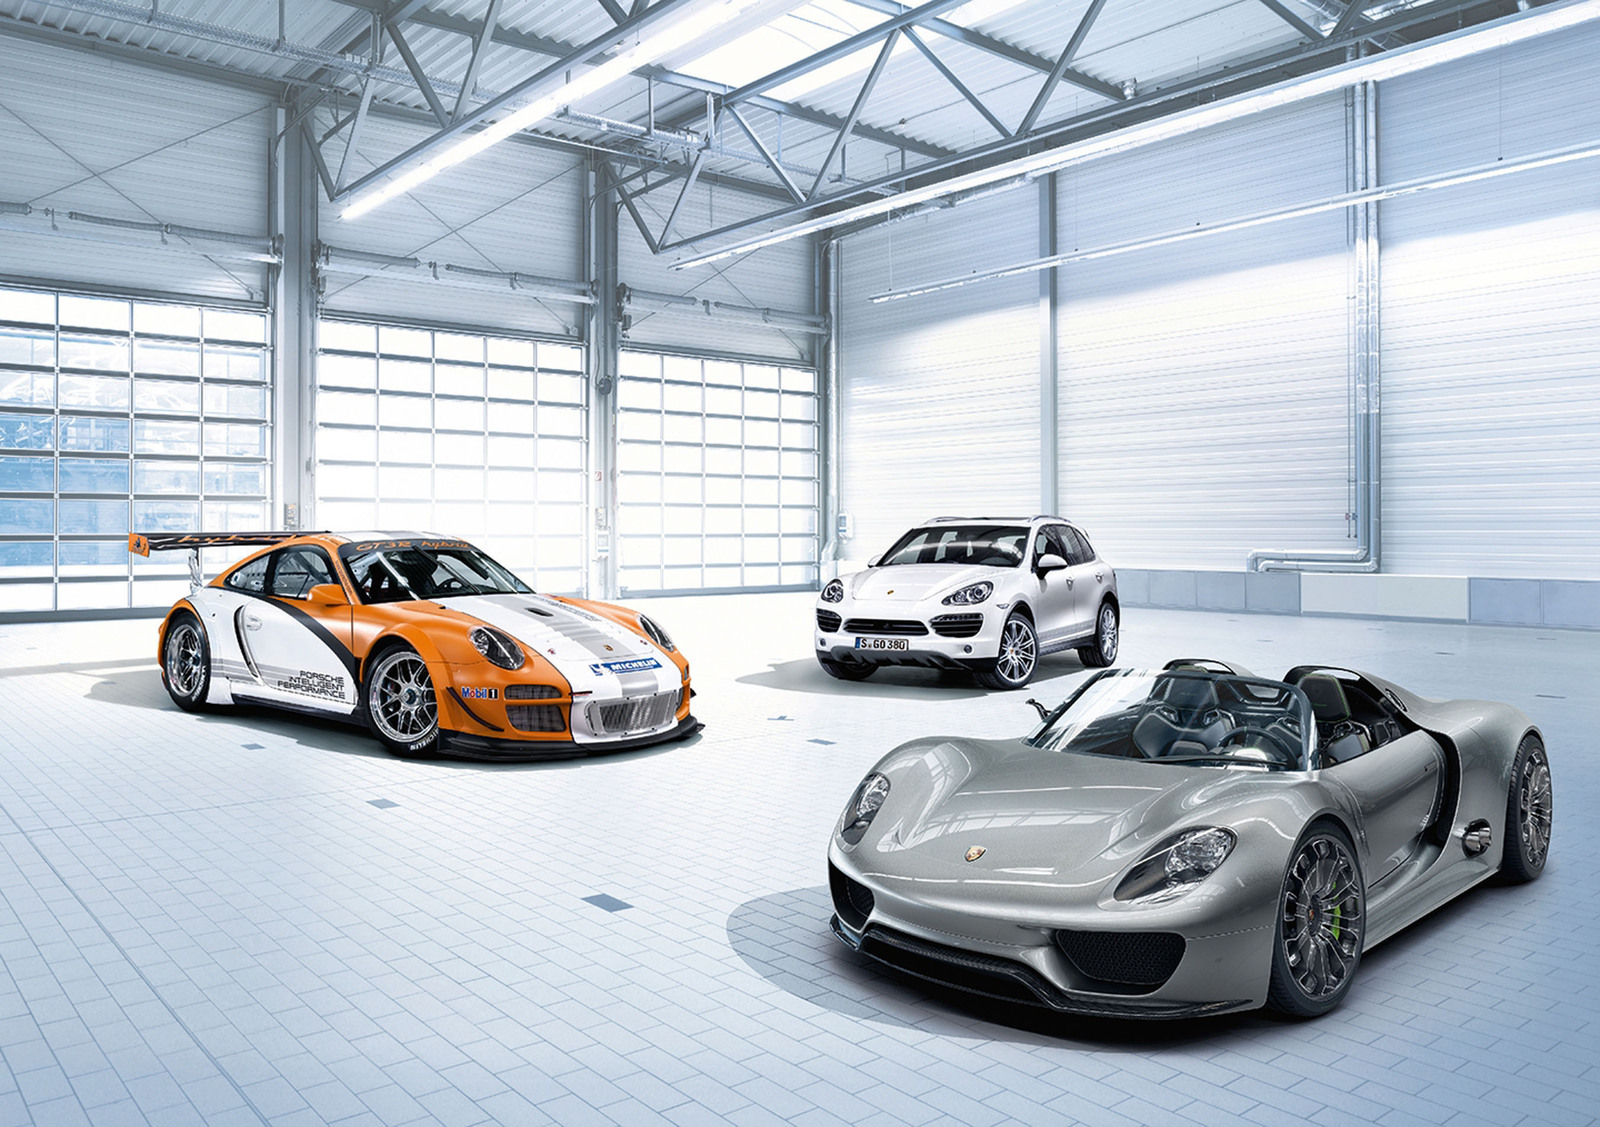 Porsche To Head Development Of Sports Cars And Luxury Sedans For Vw Group